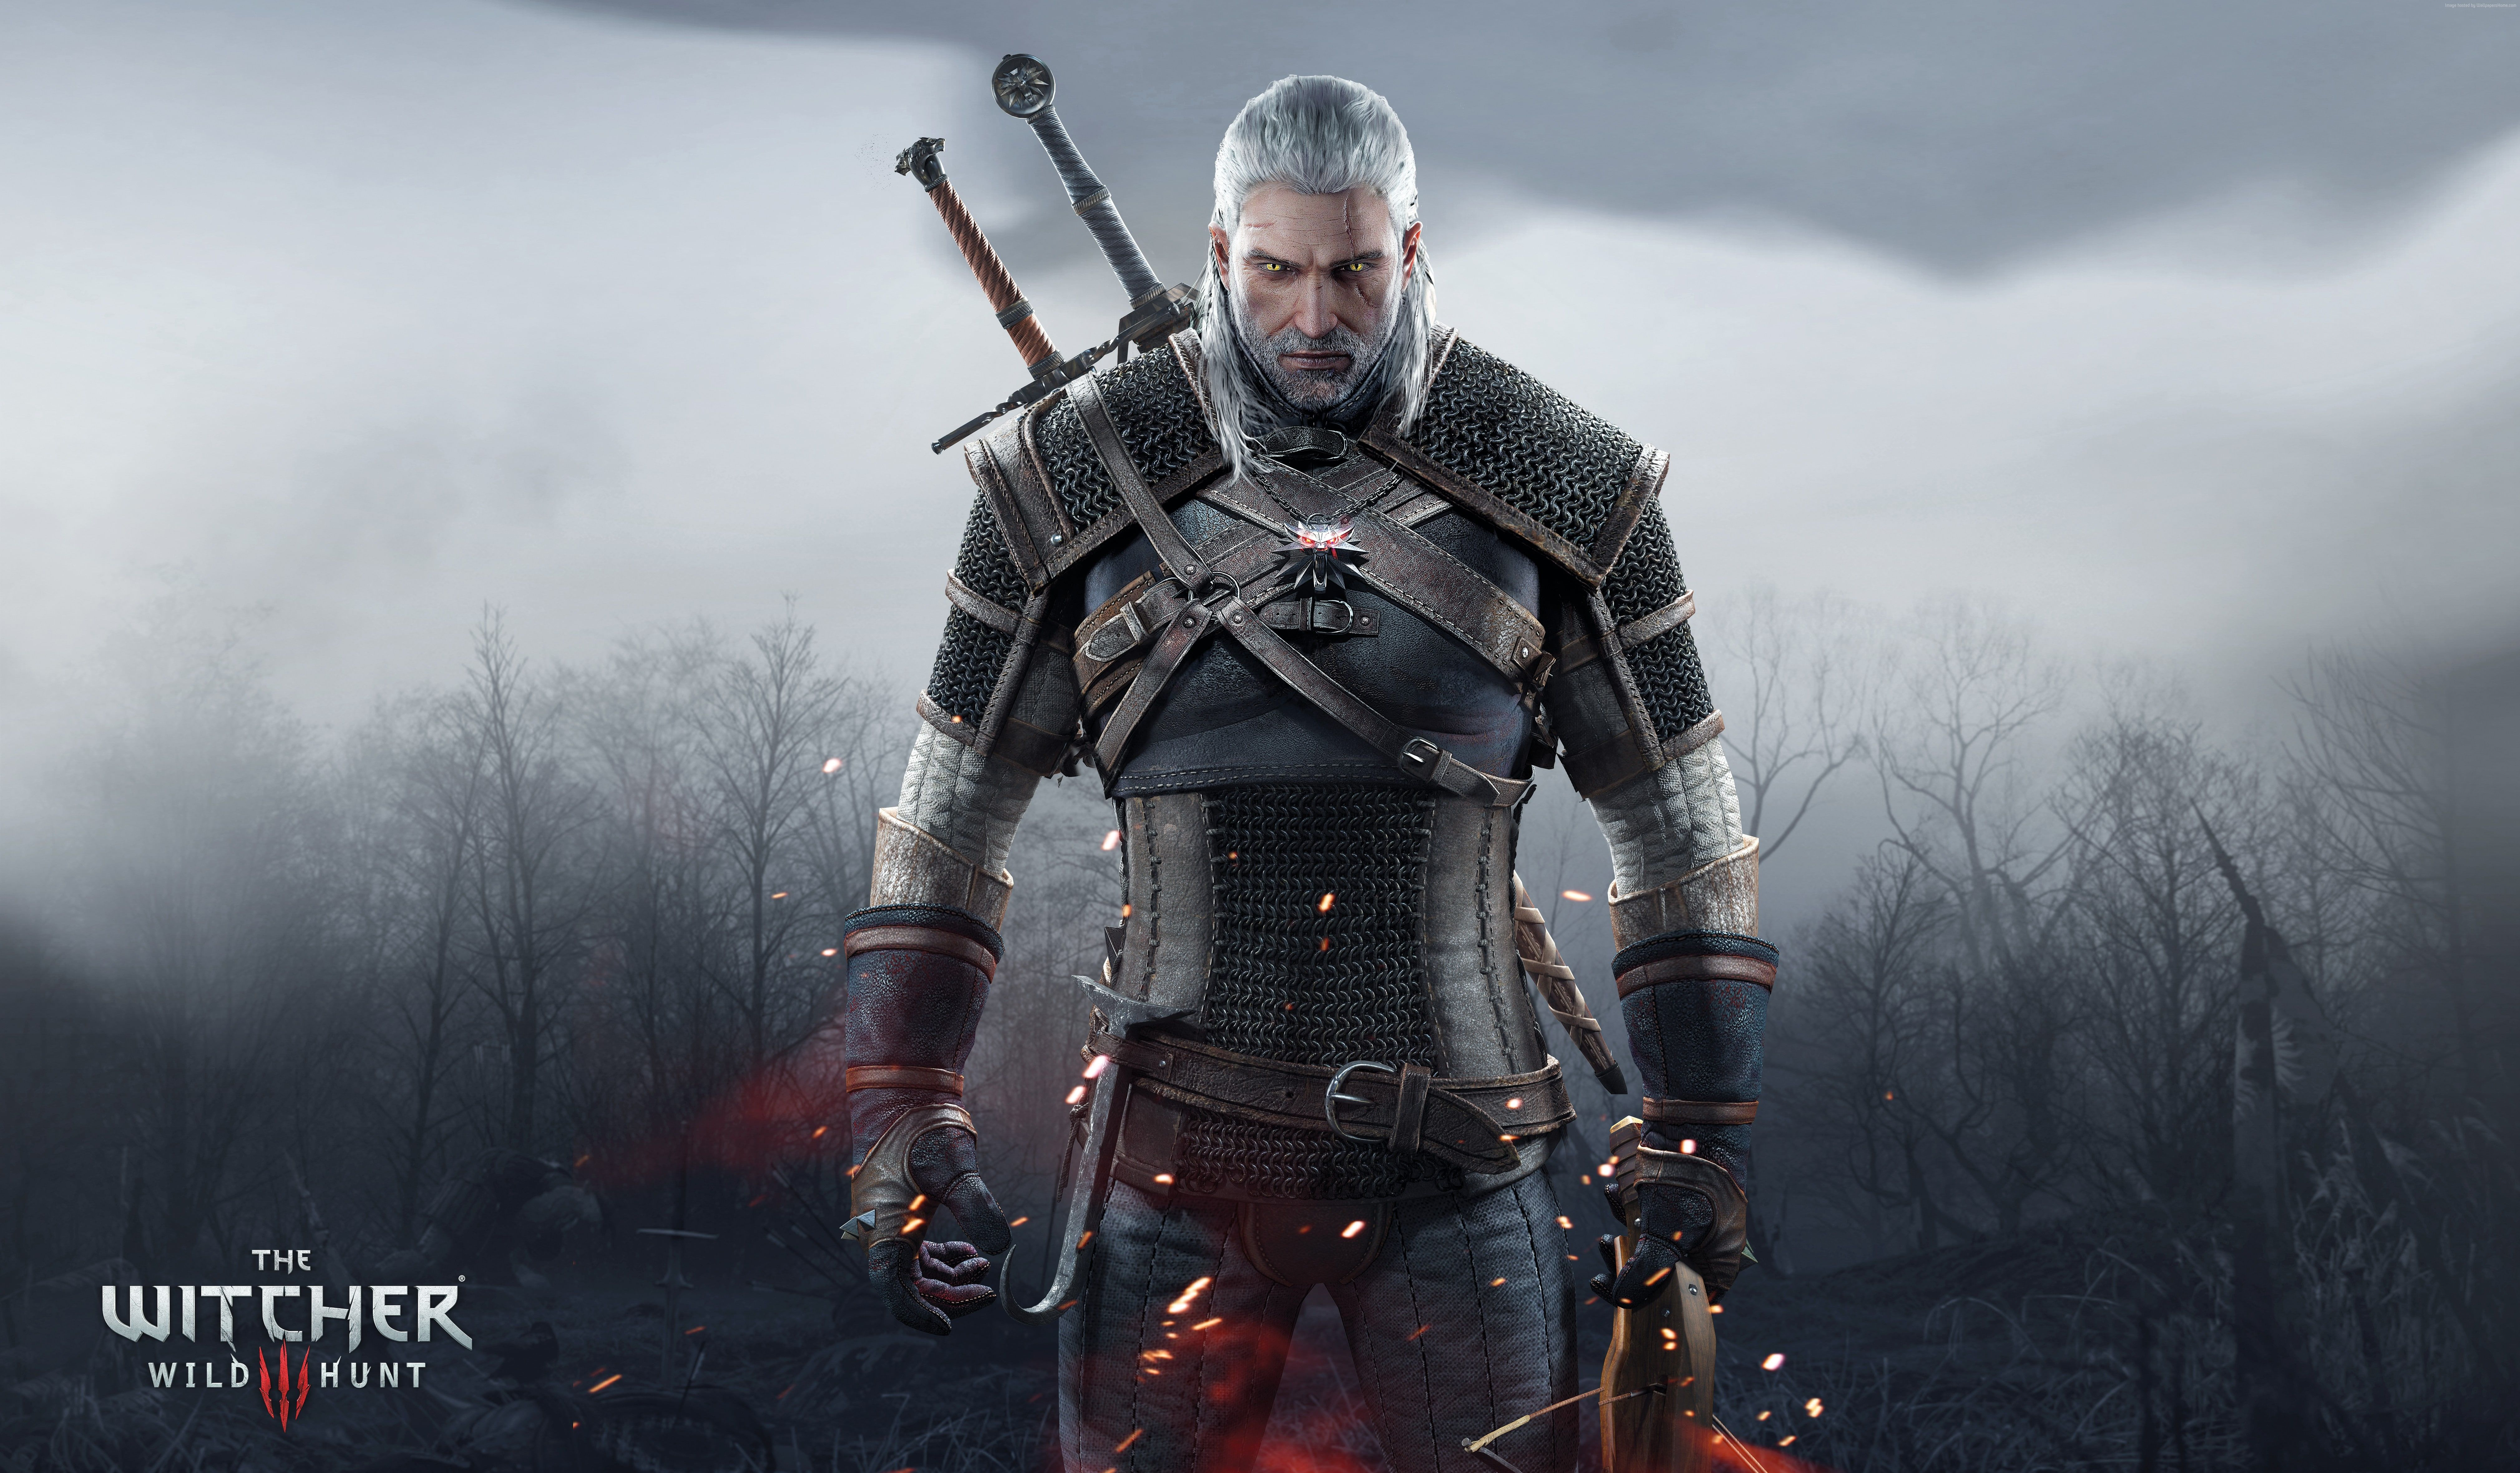 4k The Witcher 3 Wild Hunt 5k 8k Wallpaper Hdwallpaper Desktop In 2020 The Witcher The Witcher 3 Wild Hunt